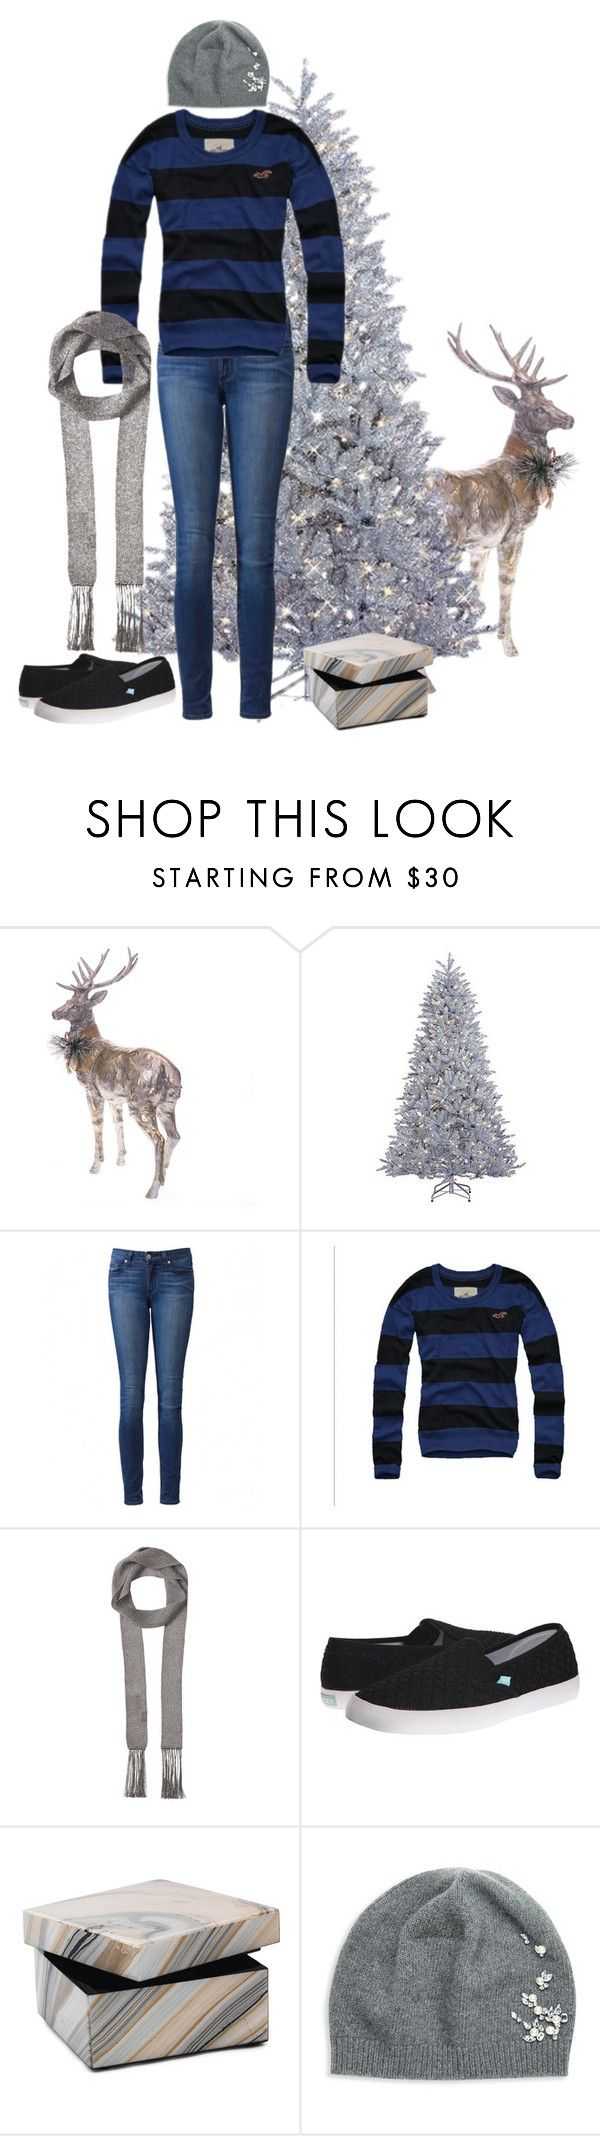 """A Touch of Silver"" by underwater-city ❤ liked on Polyvore featuring Sterling, Paige Denim, Hollister Co., Missoni, Roxy, Mitchell Gold + Bob Williams and Portolano"